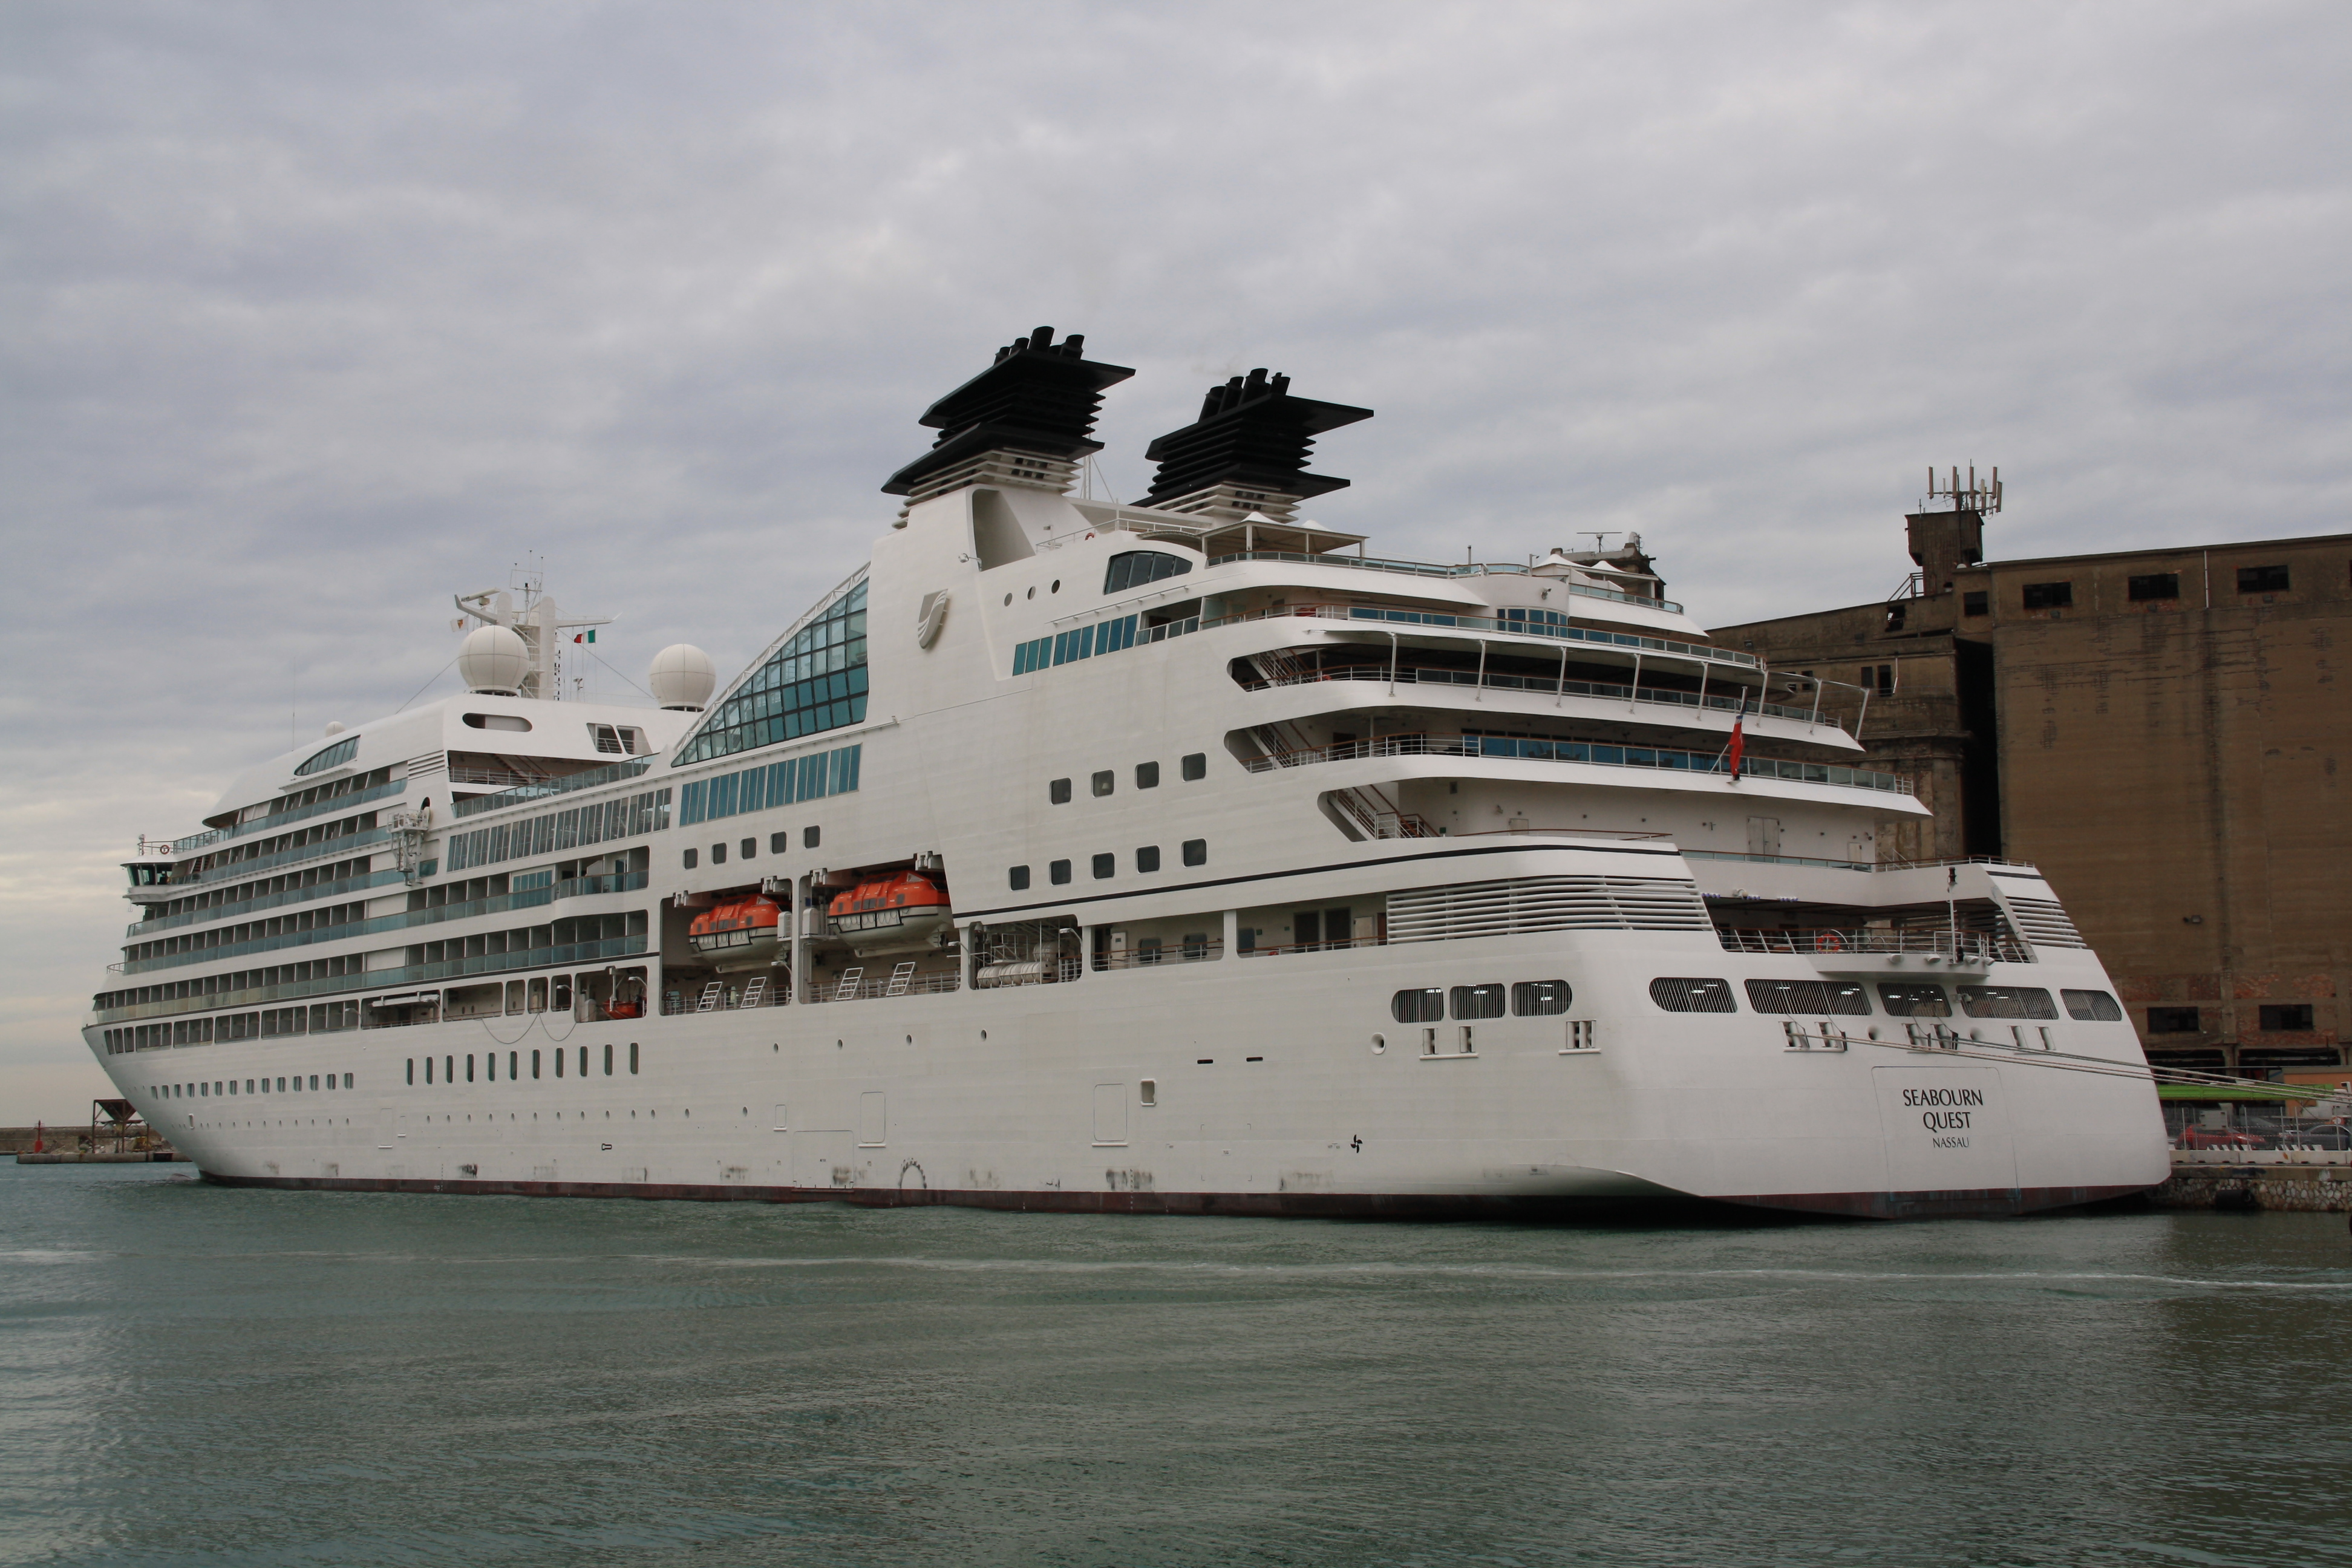 File:Seabourn Quest 01.JPG - Wikimedia Commons